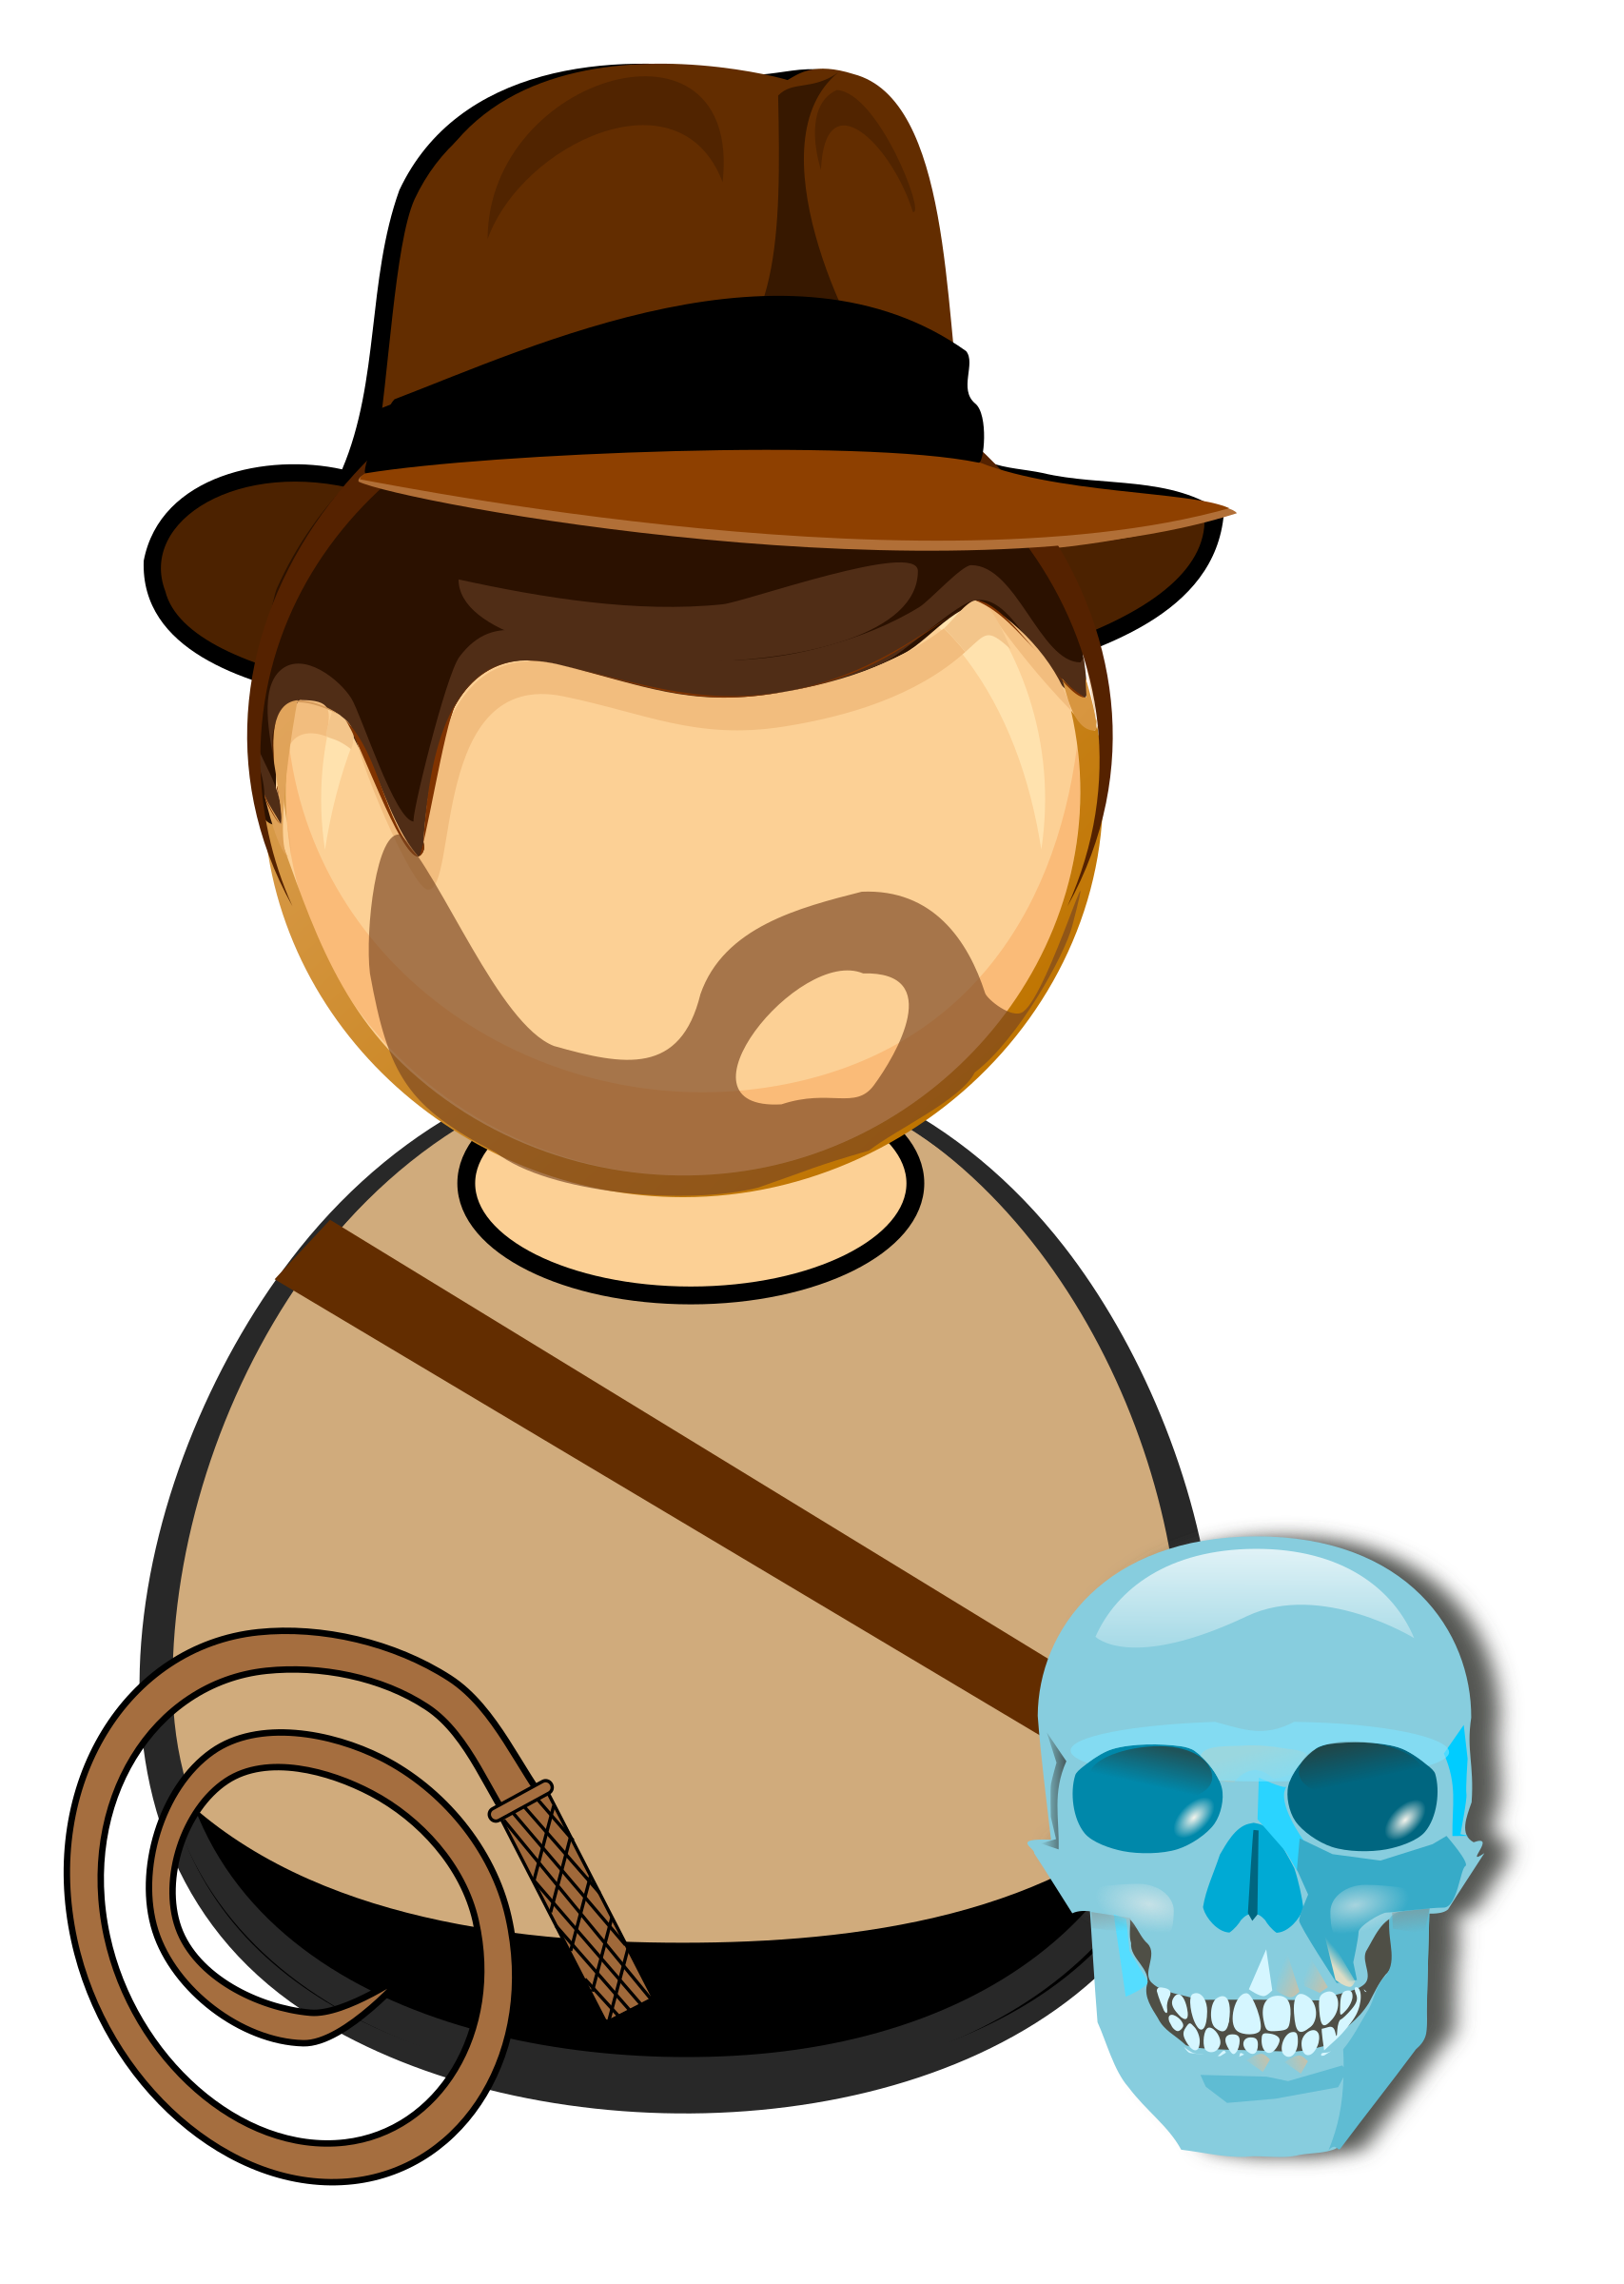 Bone whip png. Adventurer in a hat